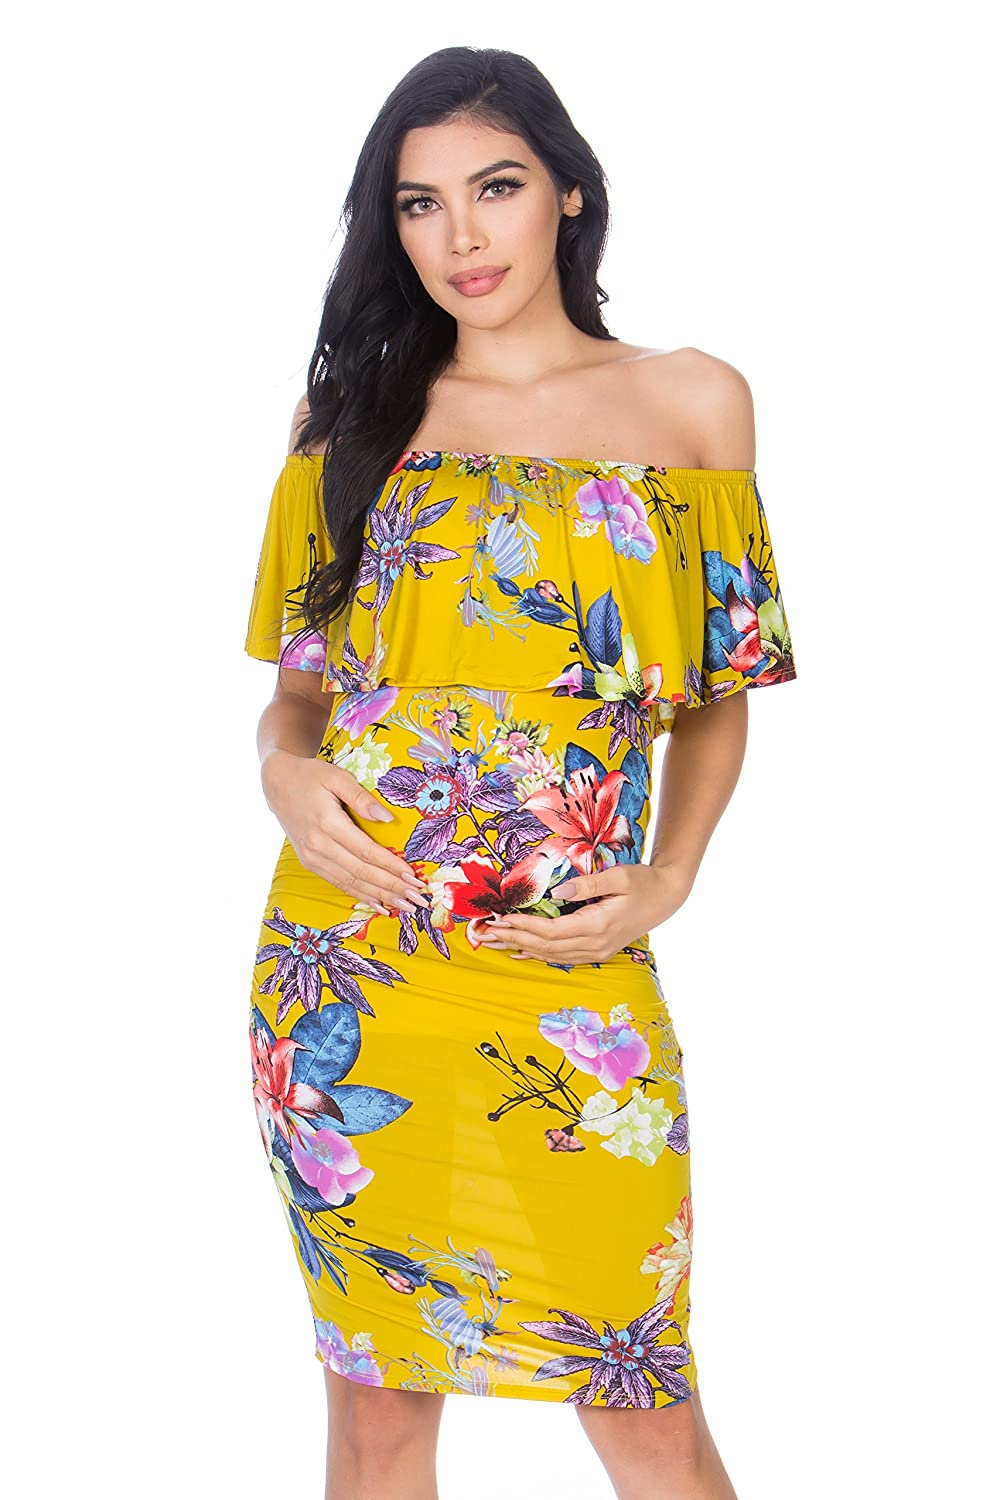 My Bump DRESS レディース B07FKJGW6L Large|Yellow/Red Flower Yellow/Red Flower Large